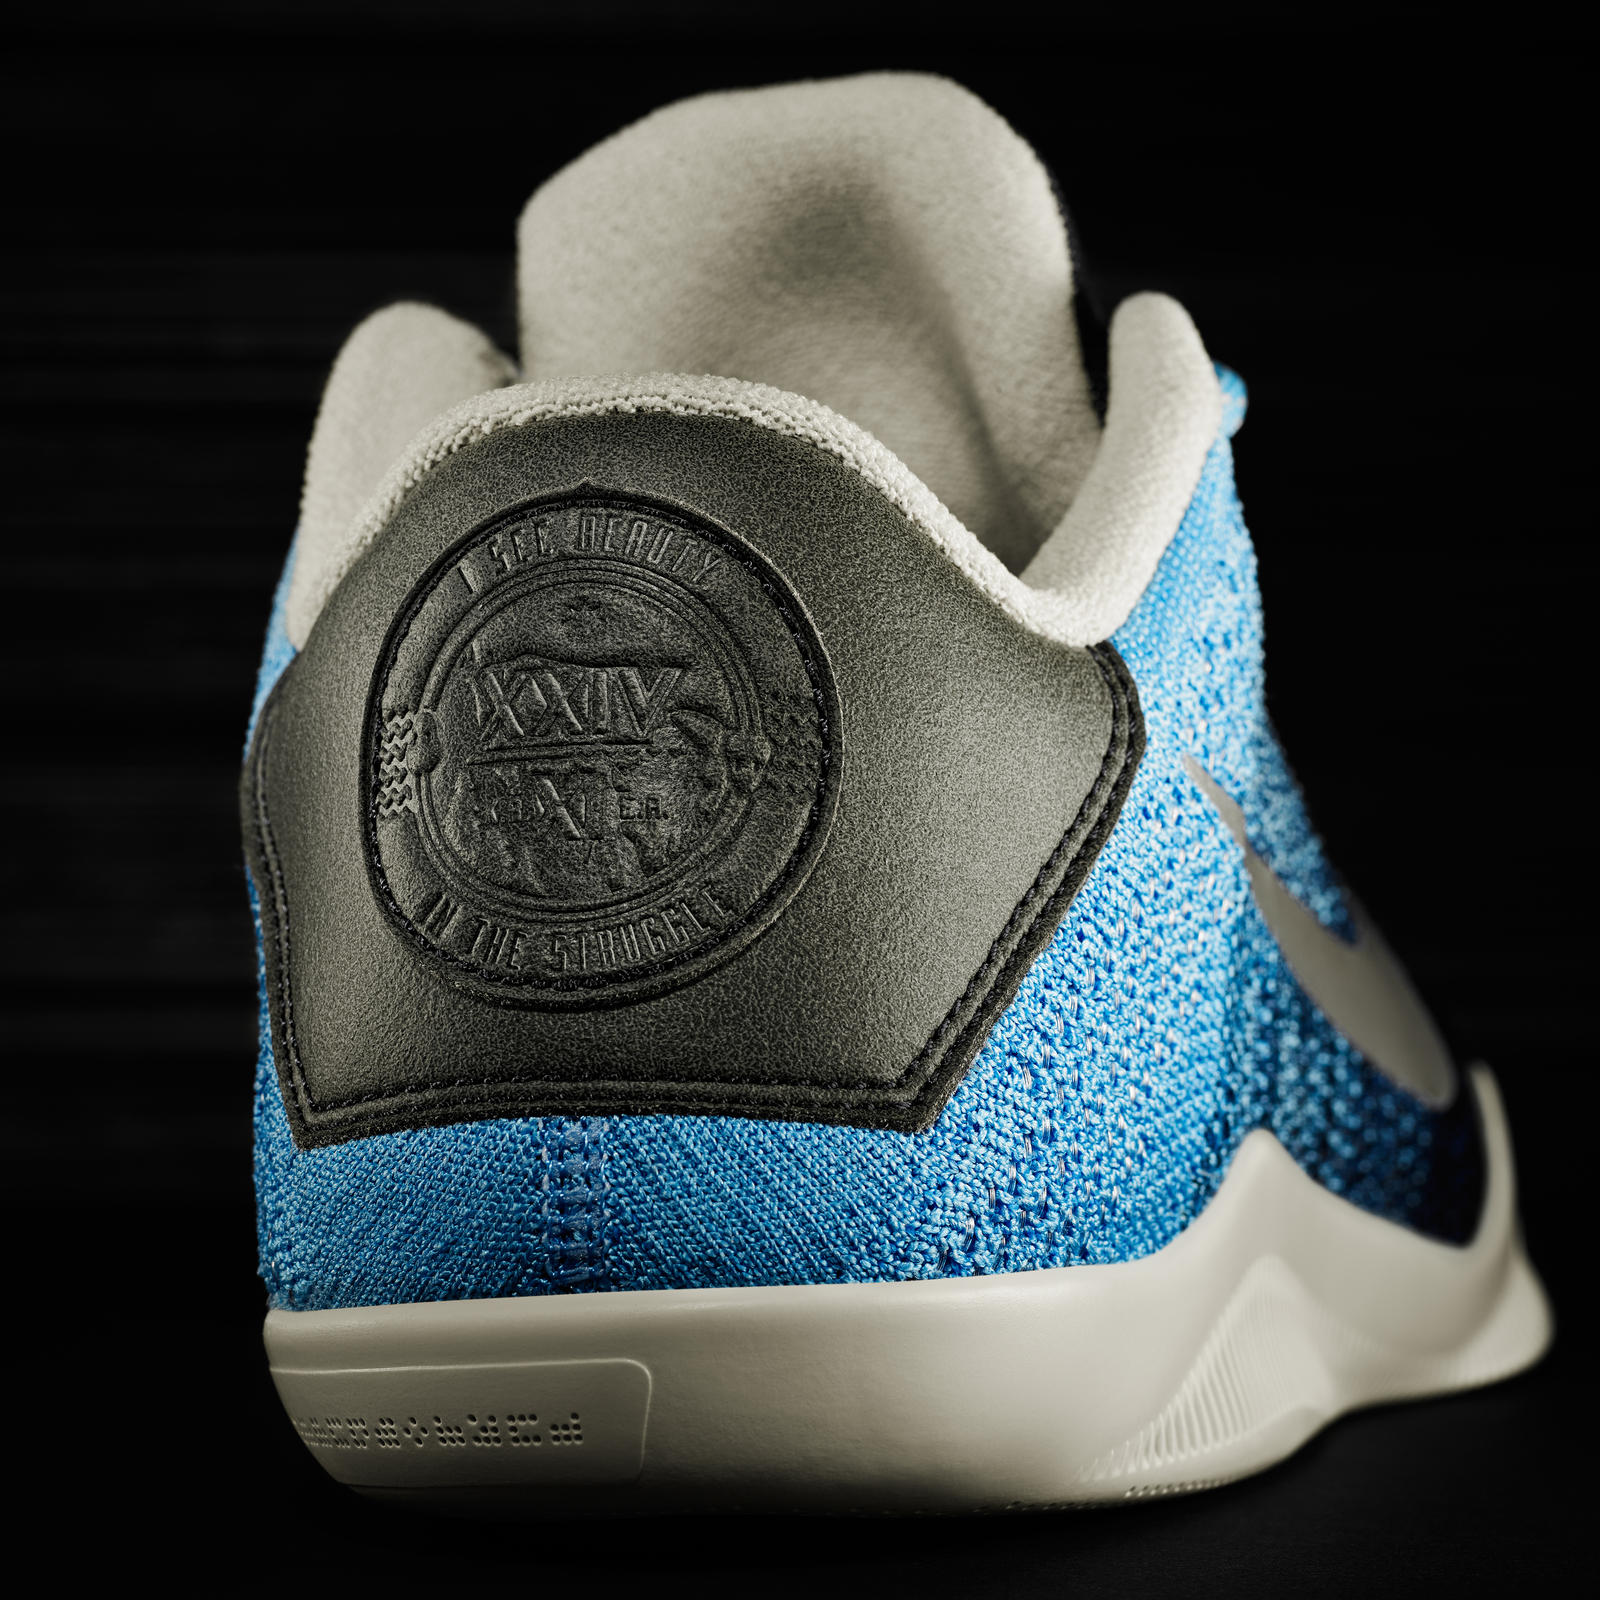 Nike Kobe XI Muse Avar Edition Releases Today